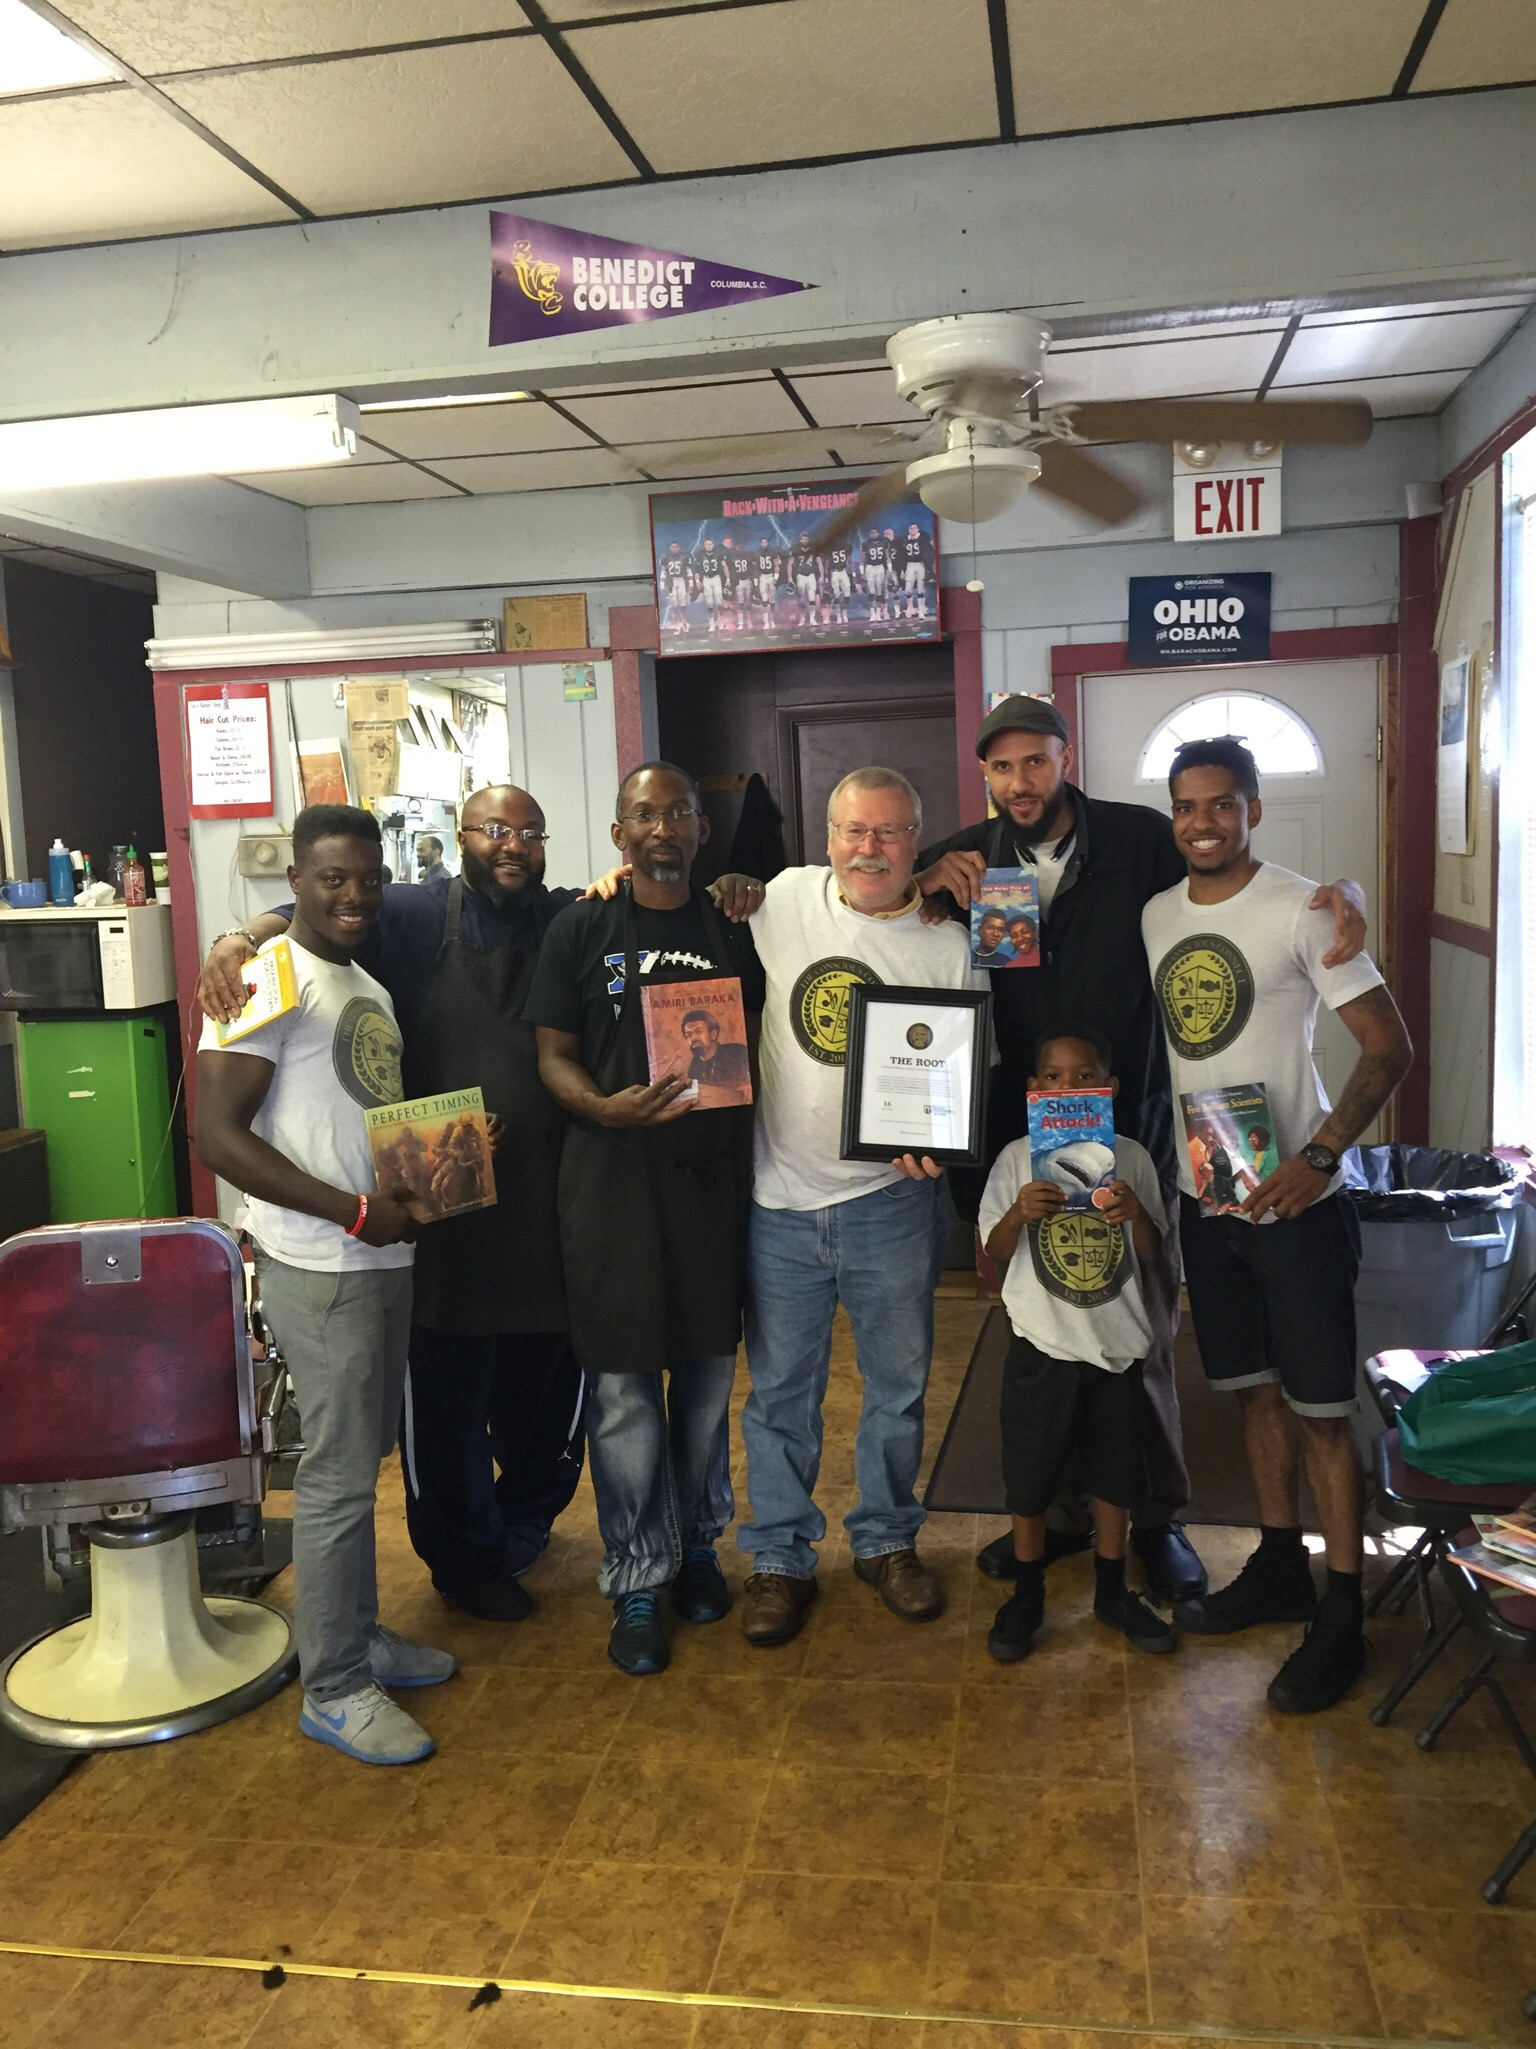 #16    Sid's Barber Shop     43 W. 2nd St, Xenia, OH 45385    July 2016